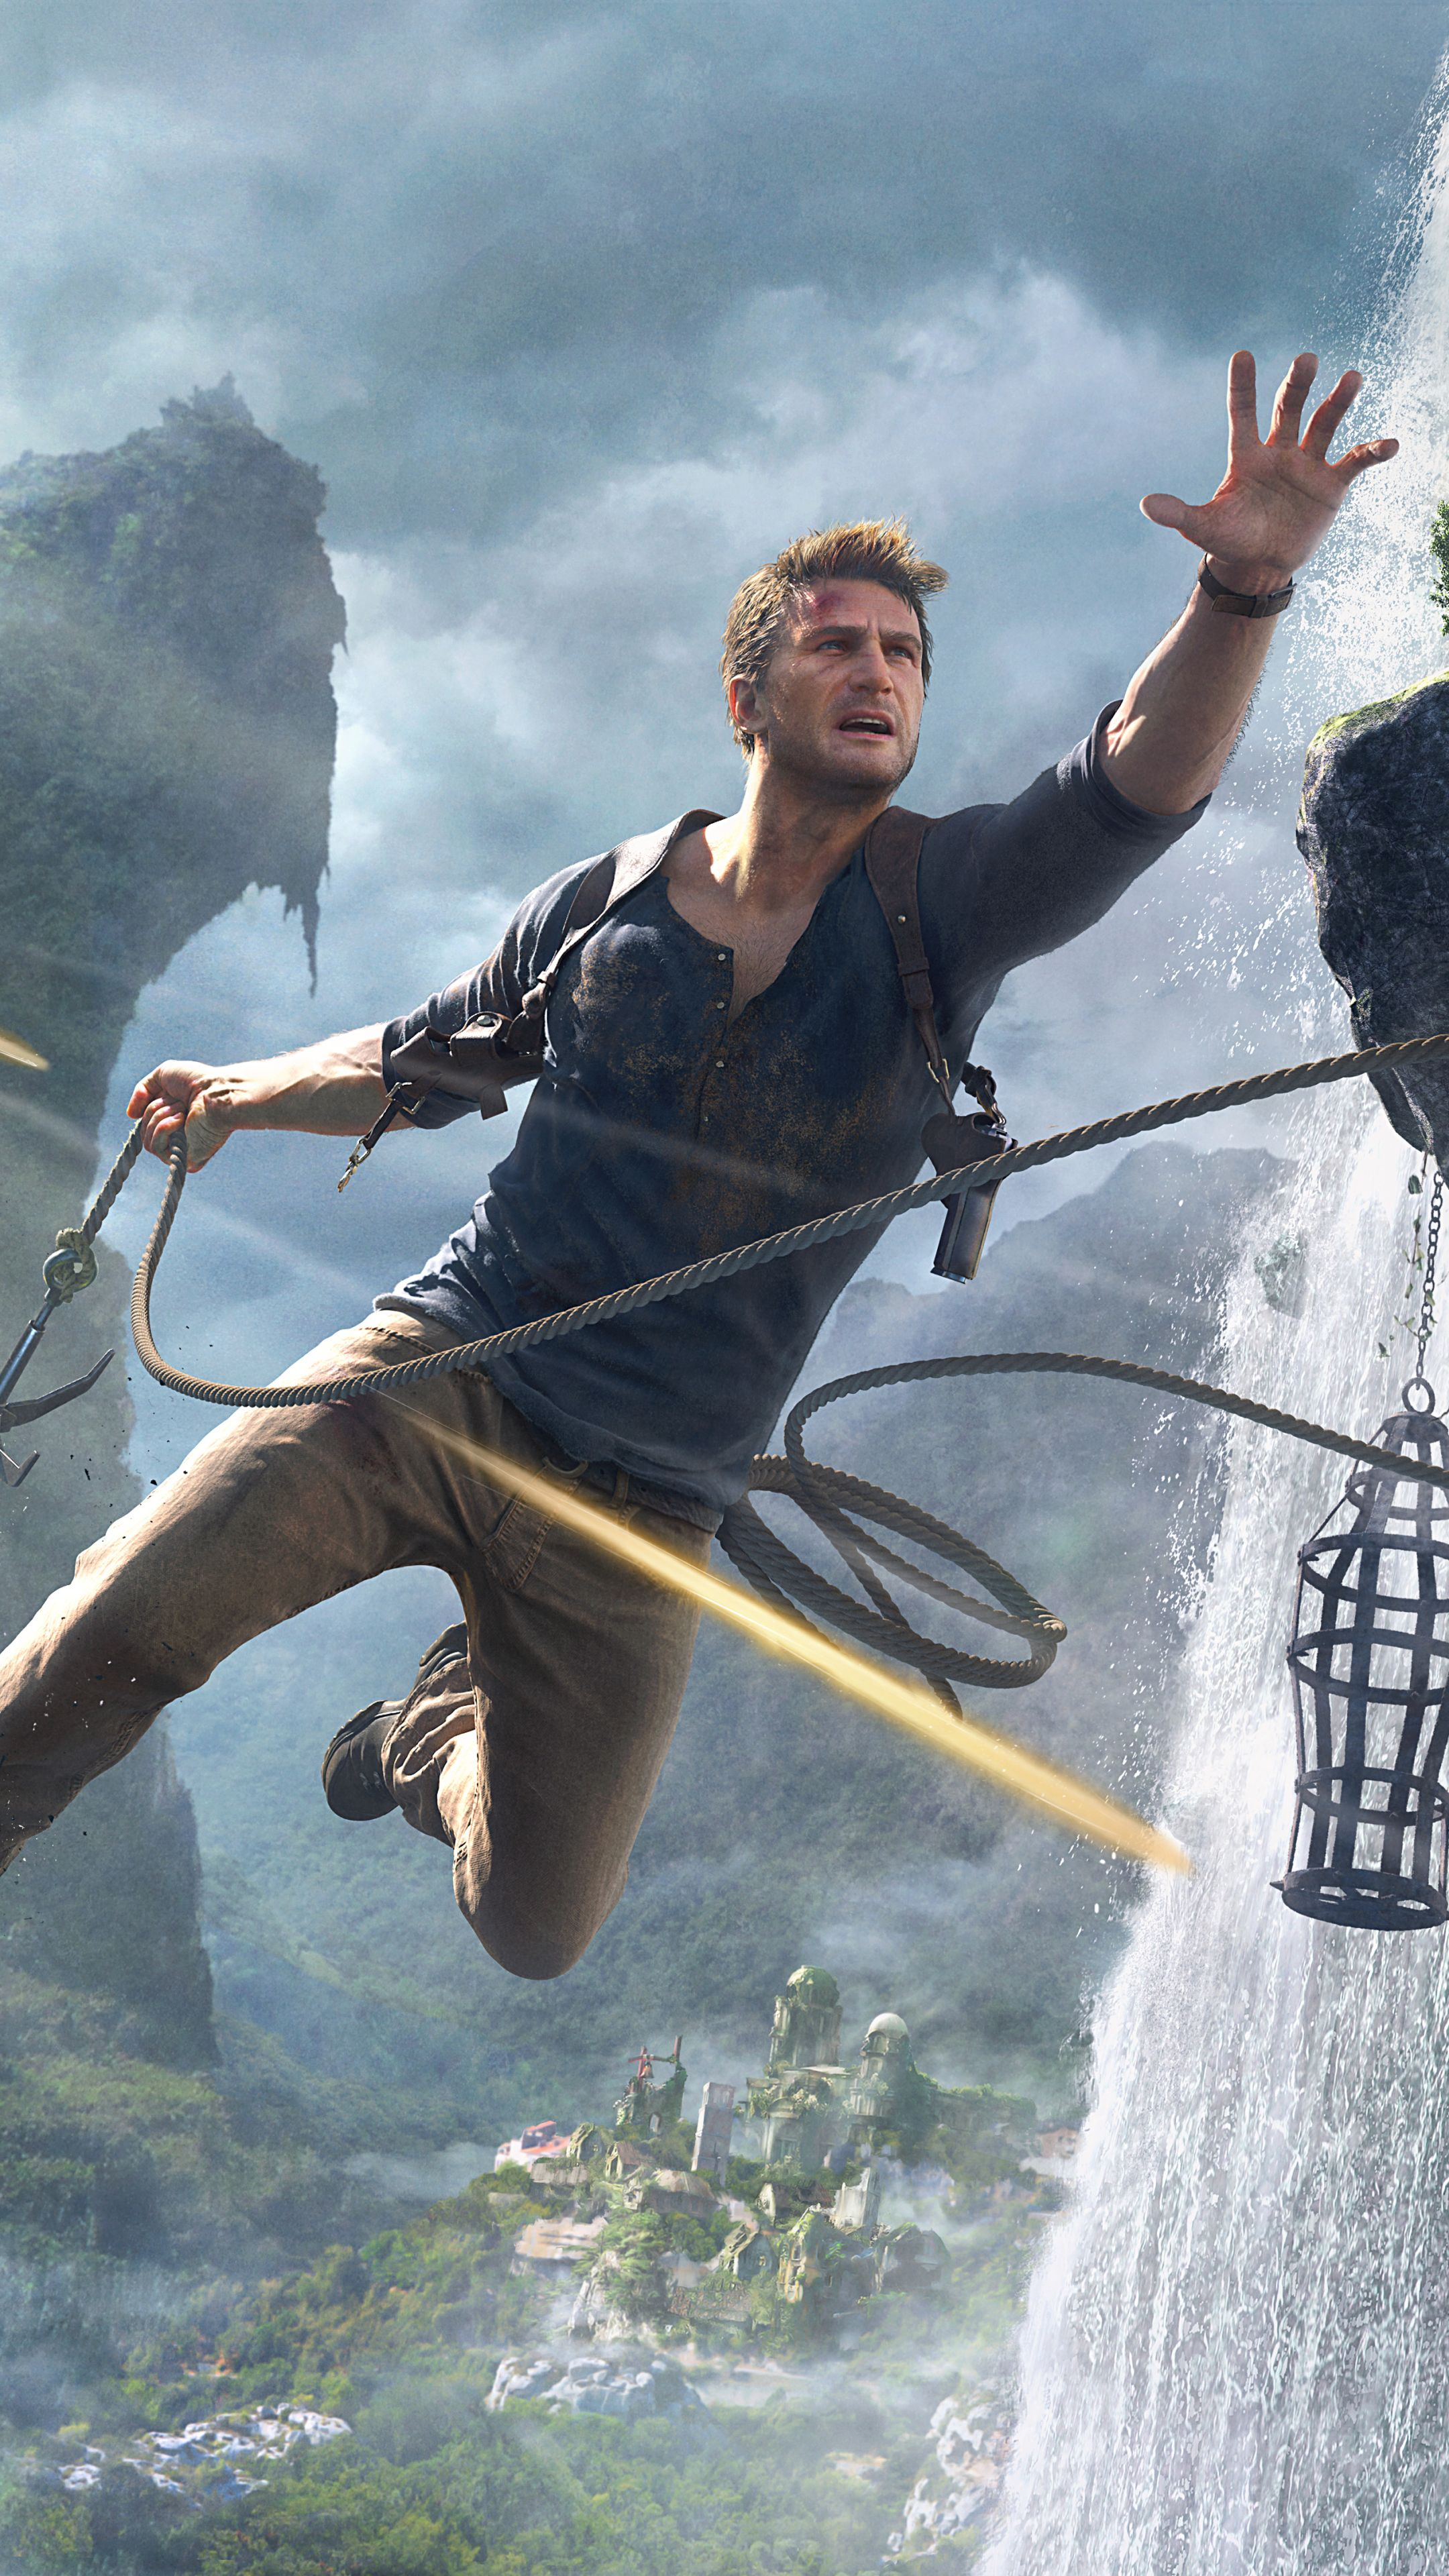 Download This Wallpaper Video Game Uncharted 4 A Thief S End